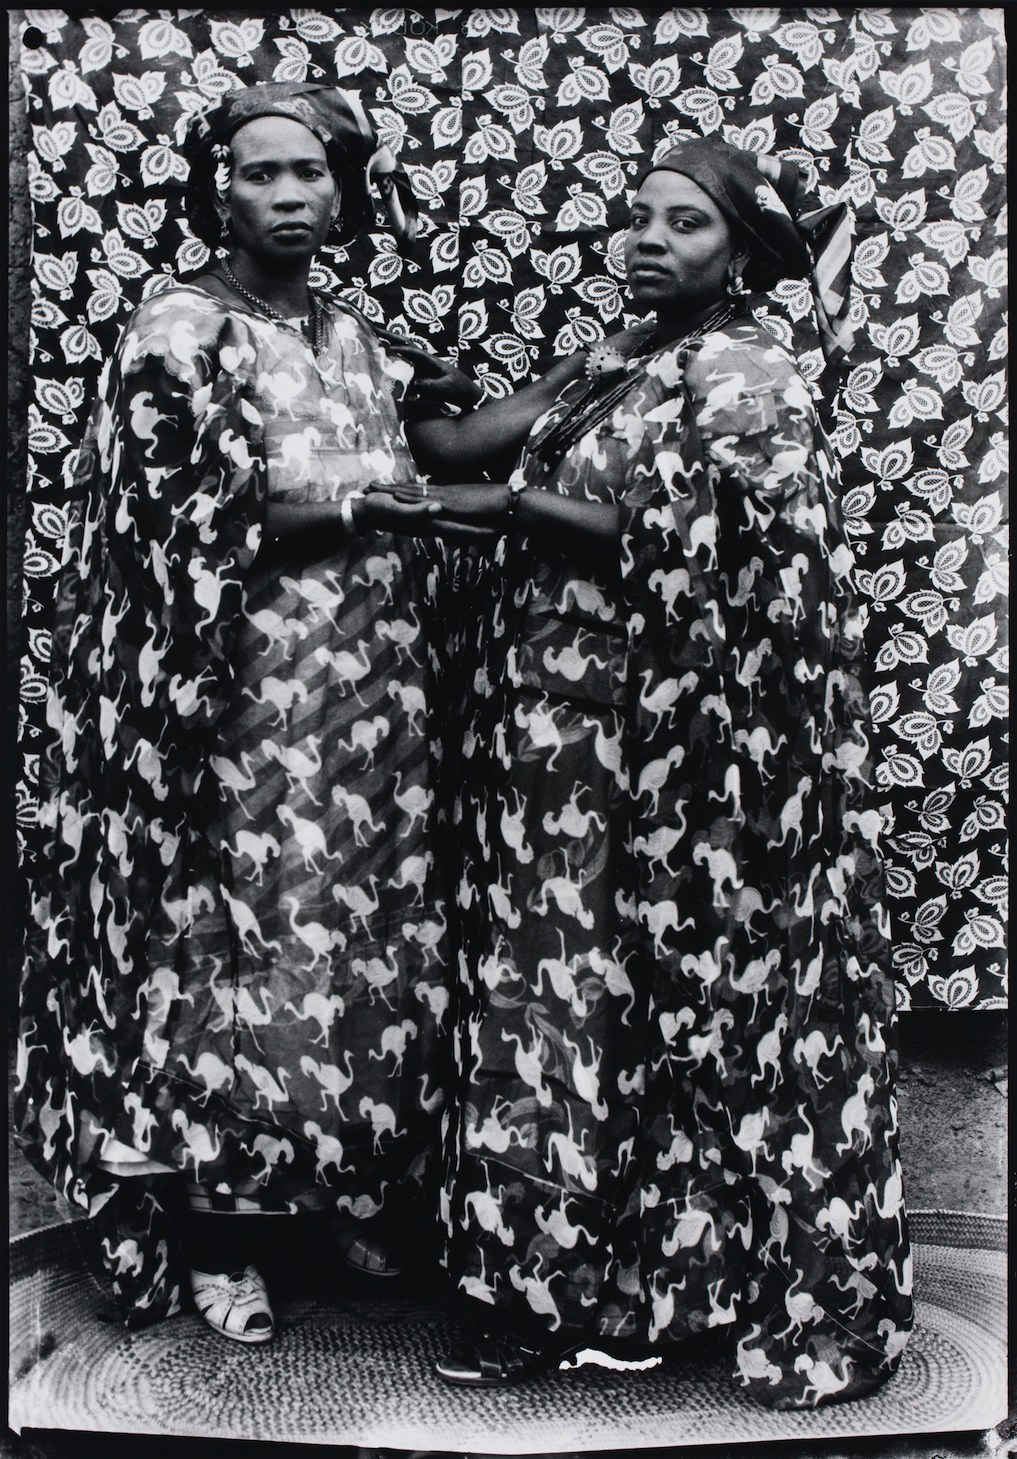 Seydou Keïta. Untitled, 1959. Courtesy The Walther Collection and CAAC - The Pigozzi Collection, Geneva